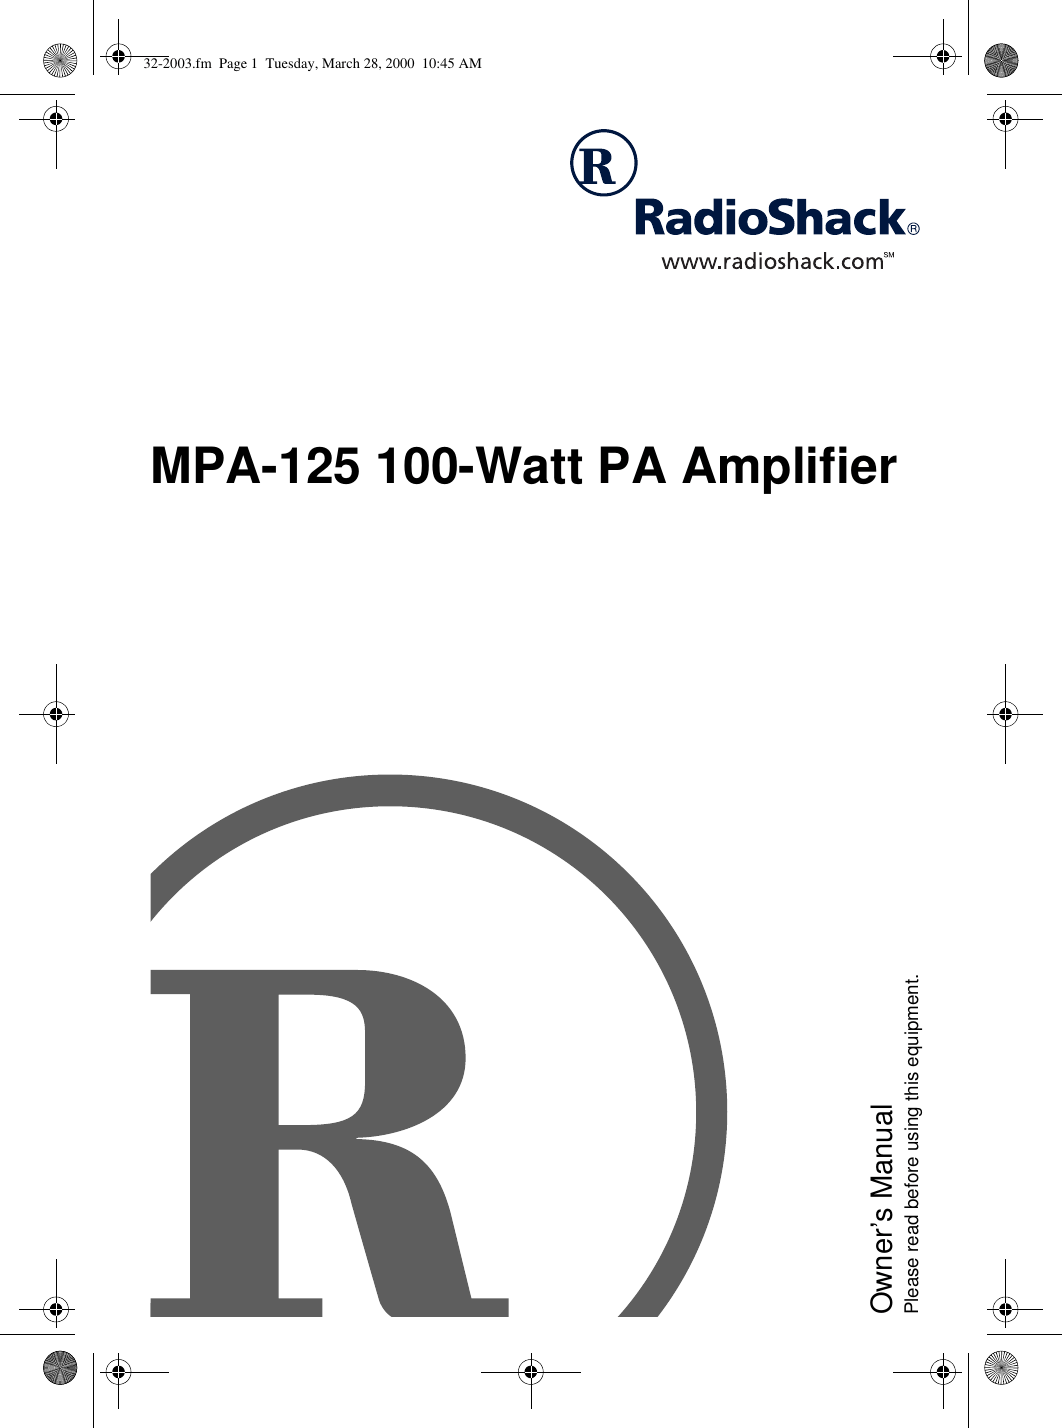 Radio Shack Mpa 125 Users Manual Www RadioShack With CircleR